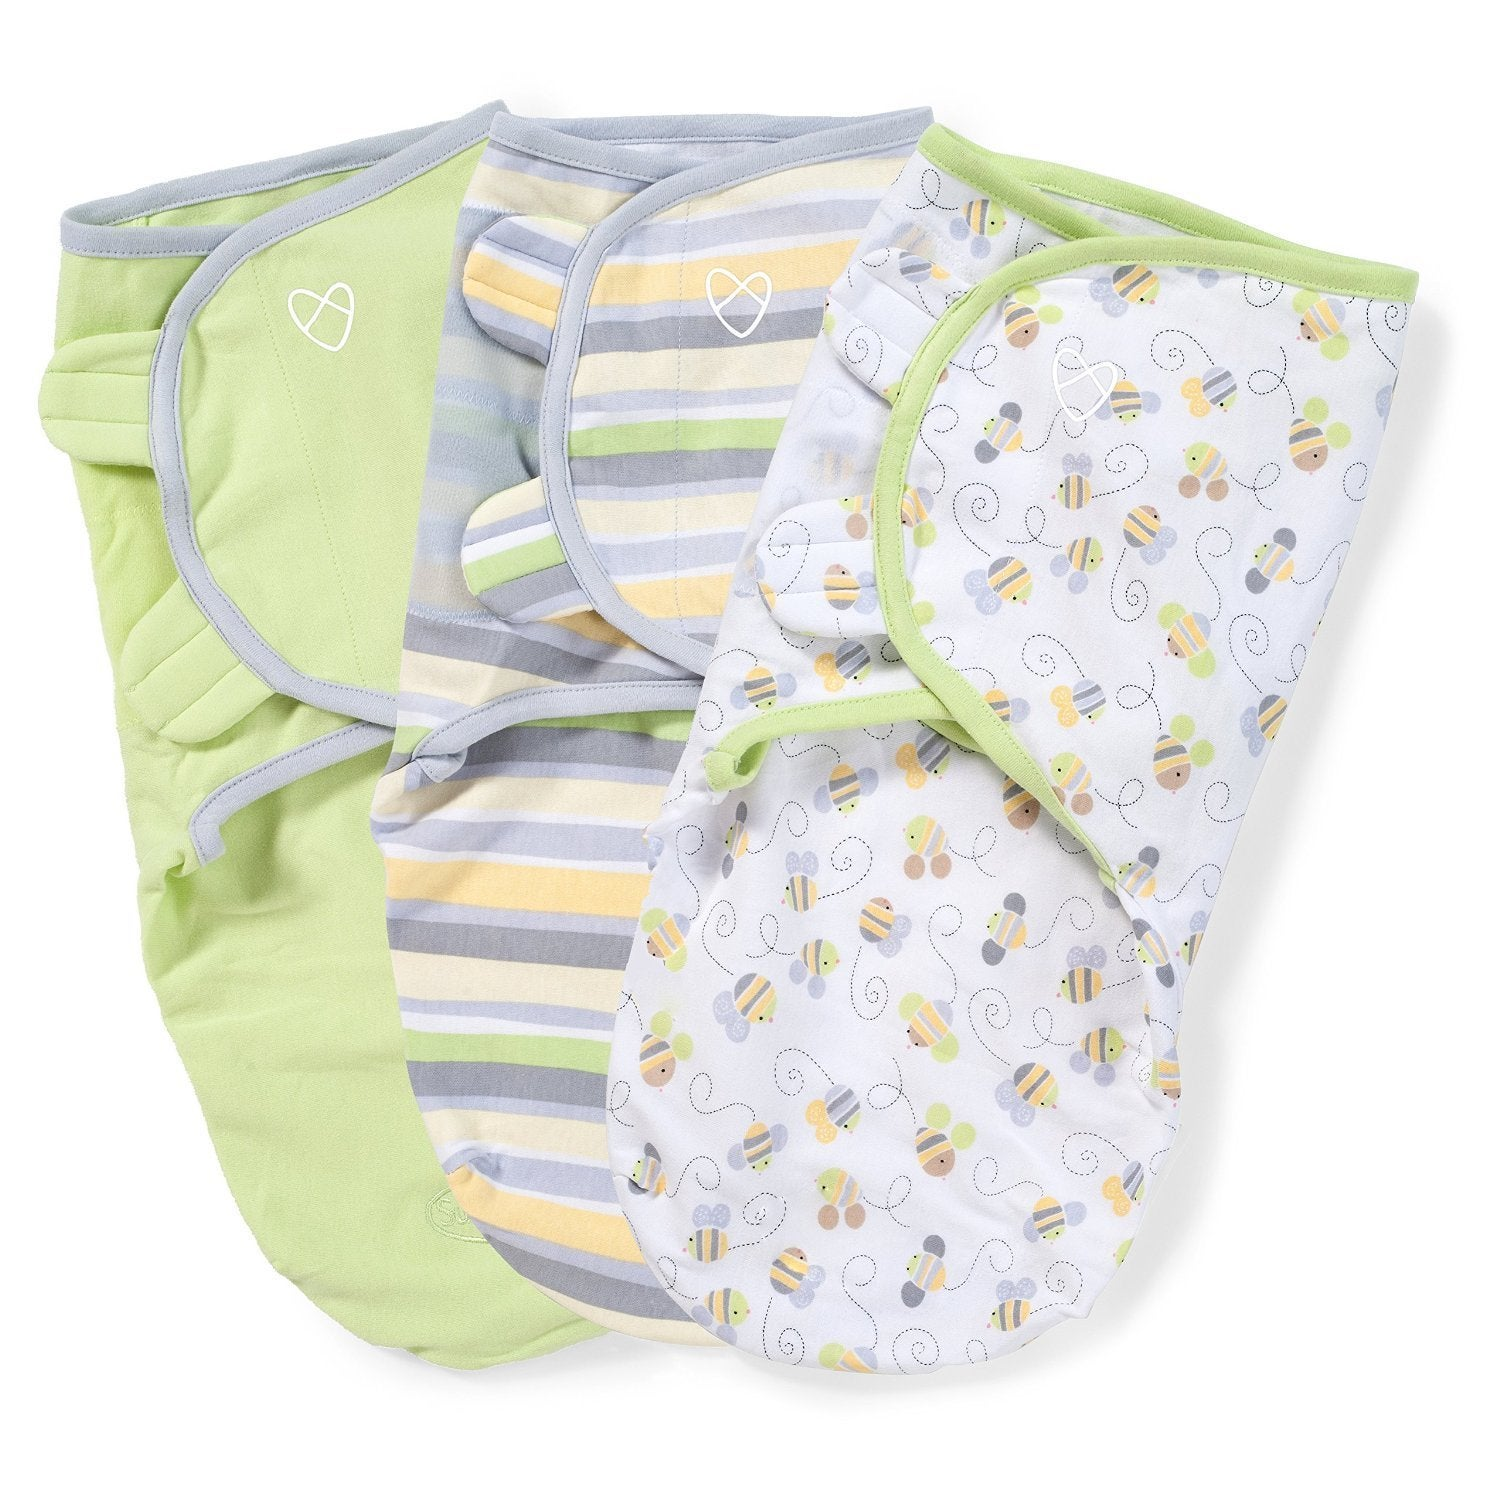 Summer Infant Swaddleme Multicolored Cotton Kiddopotamus Natural Bee